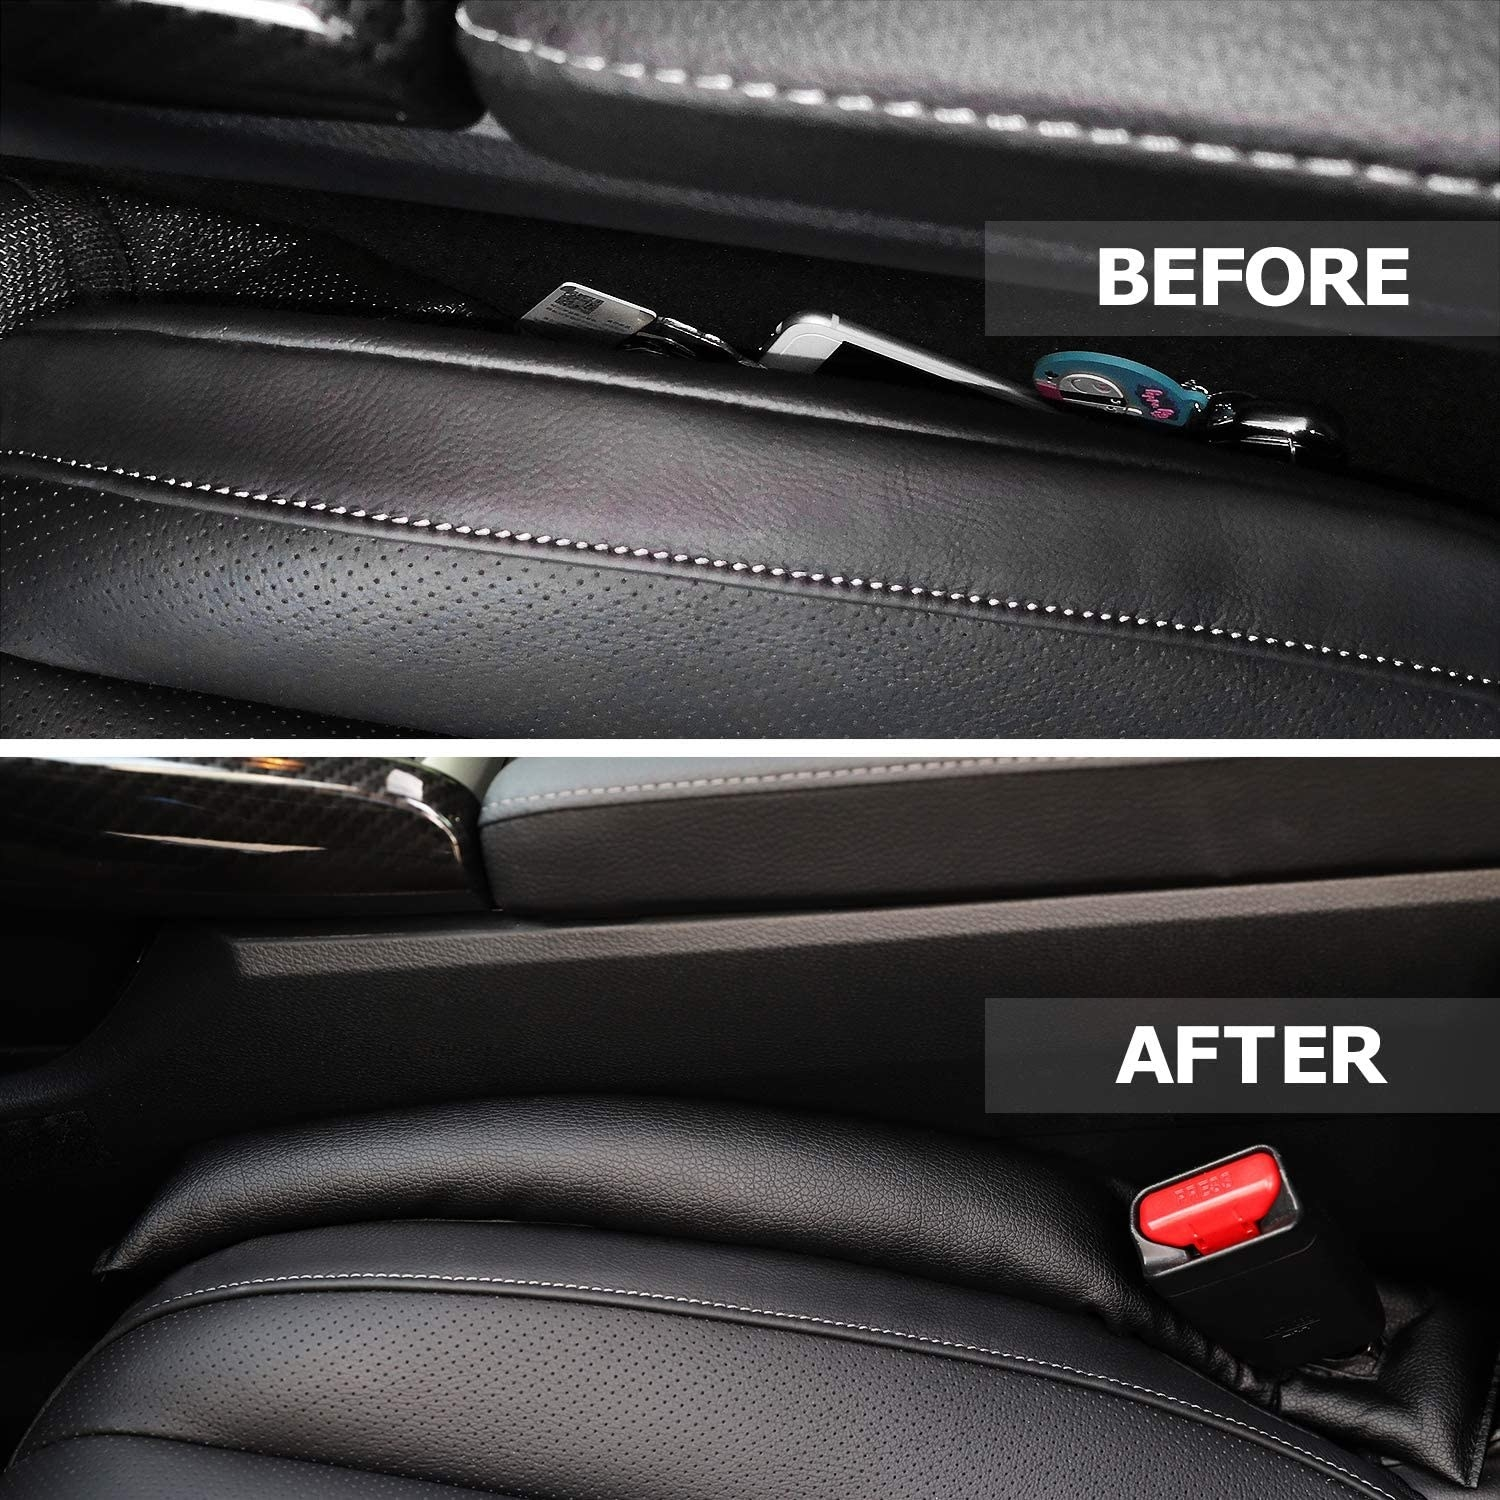 A before image showing a gap between the seat and console and an after image of it filled with a long fabric cushion